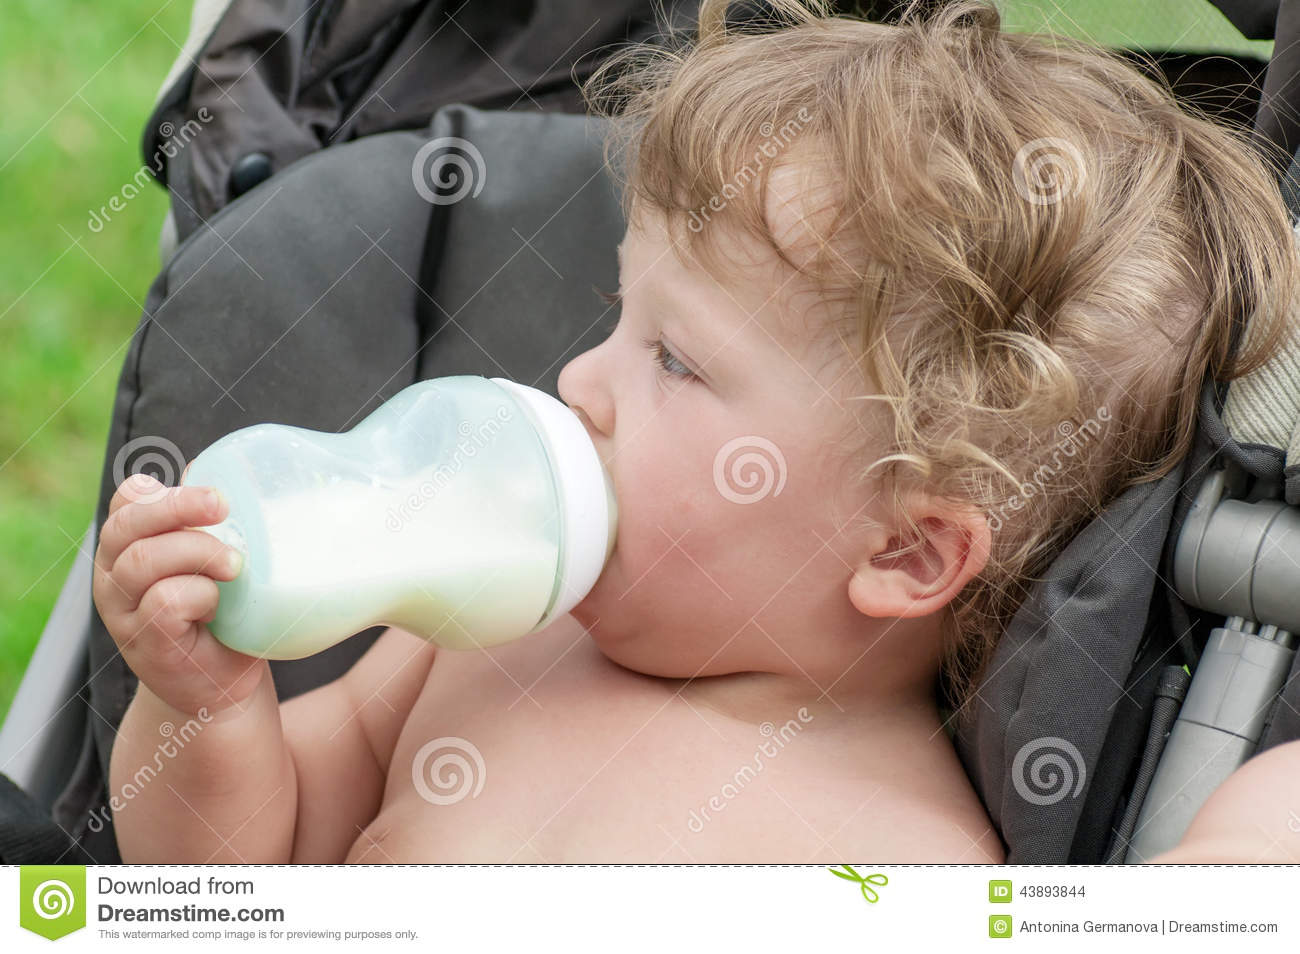 Baby wont suck bottle